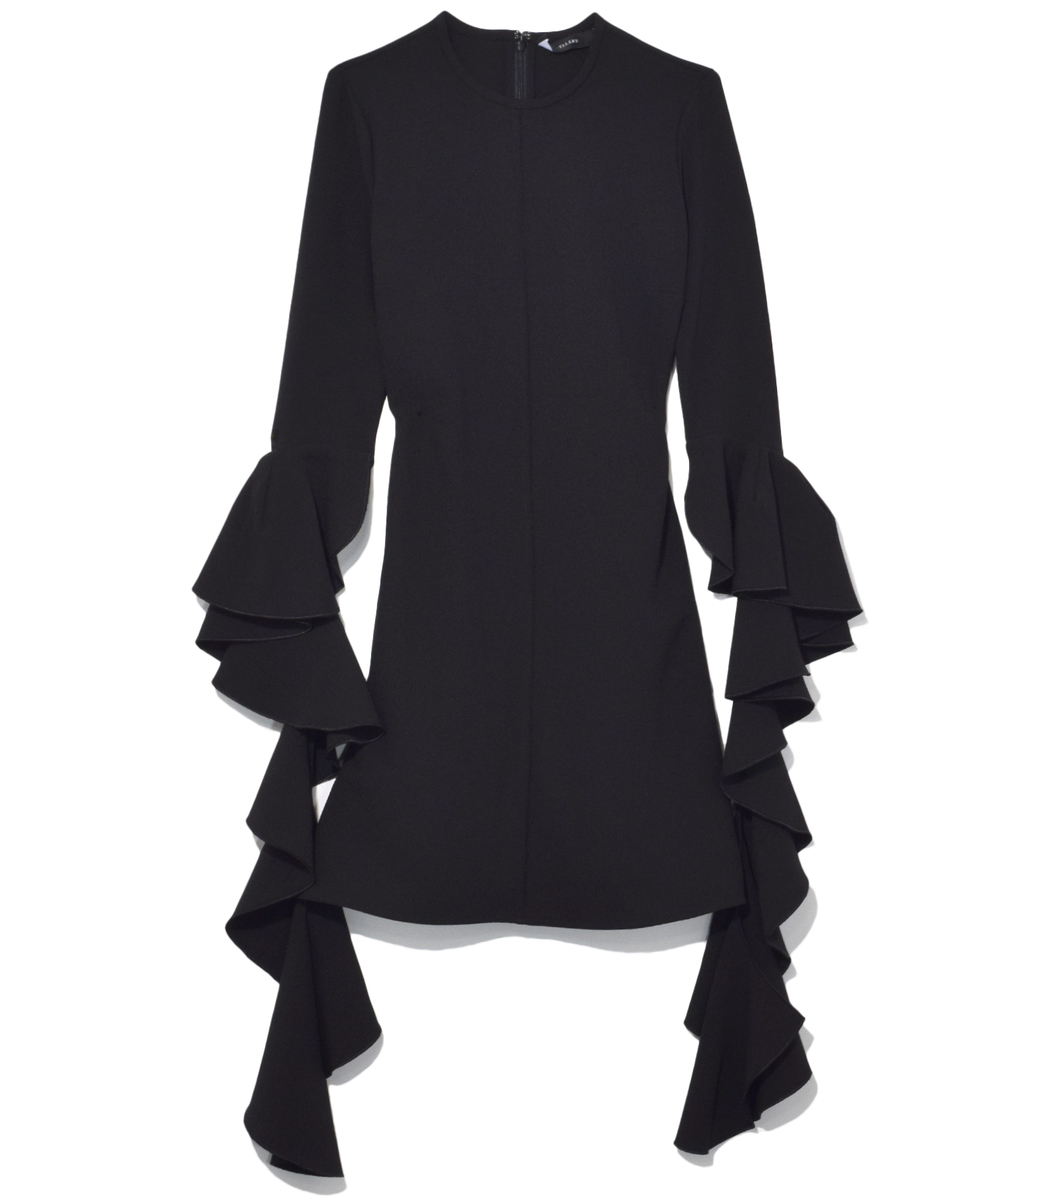 Kilkenny Deconstructed-Sleeve Crepe Dress, Black